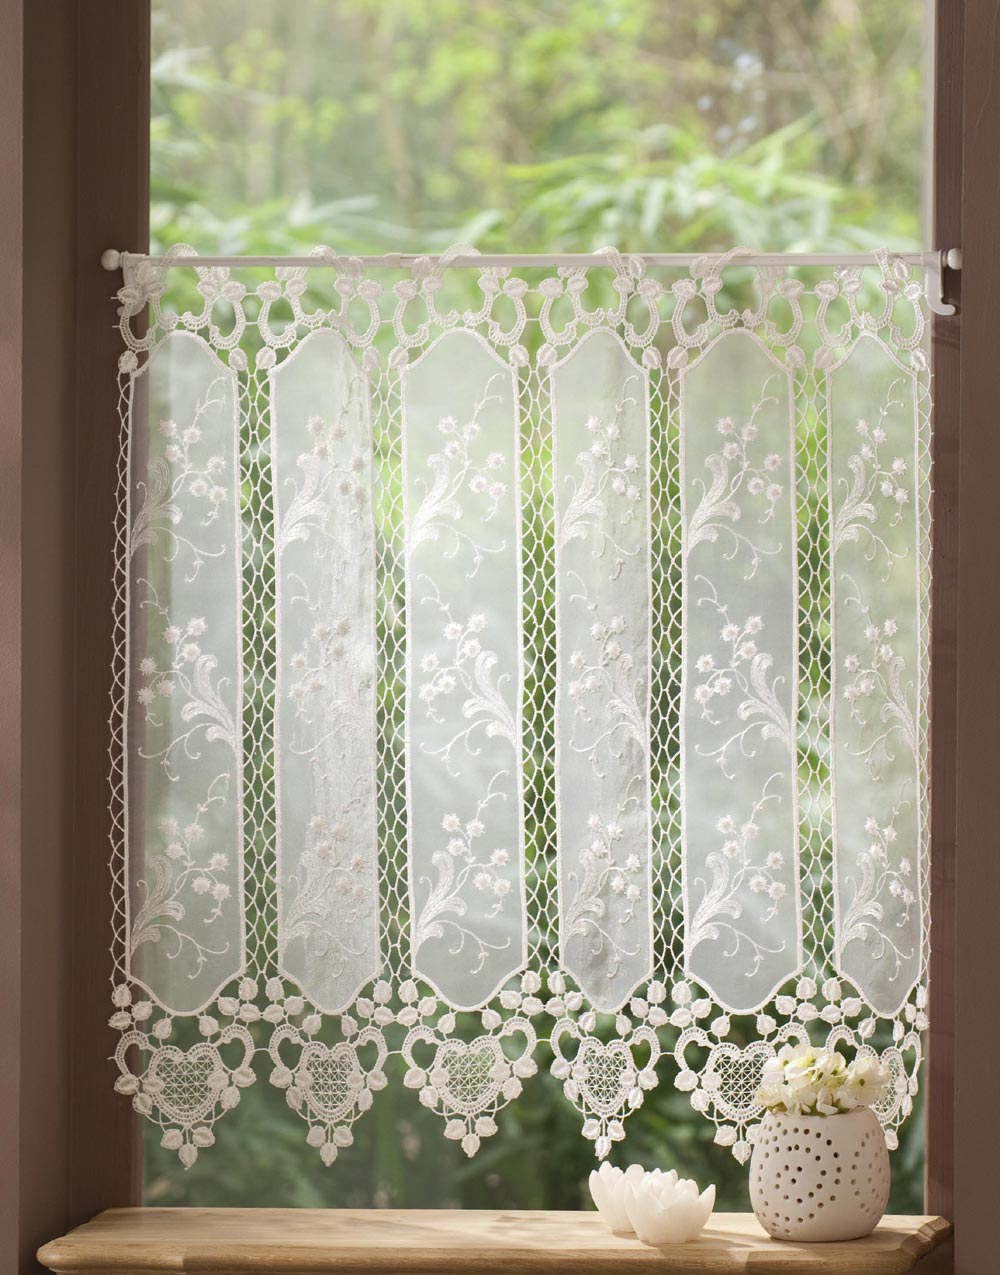 French Lace Curtains Macrame Lace Cafe Curtains